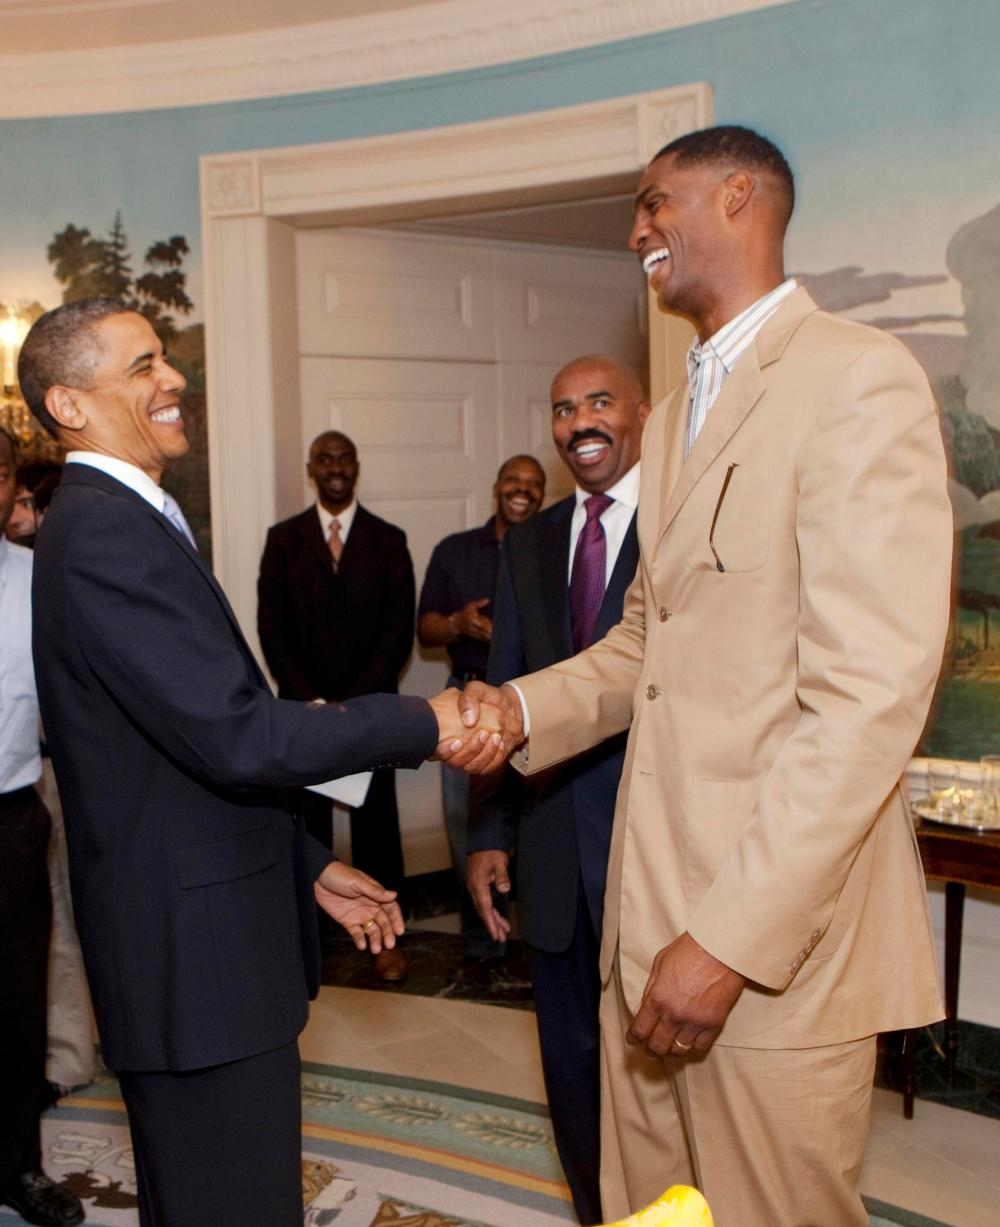 Charles Smith with Obama